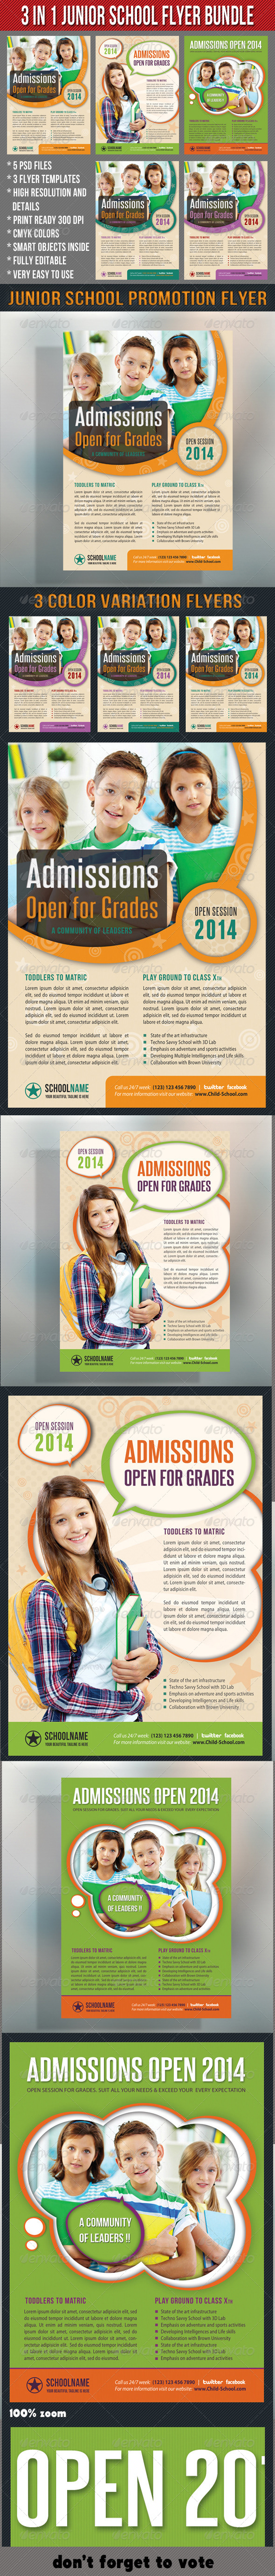 GraphicRiver 3 in 1 Junior School Promotion Flyer Bundle 01 7031751